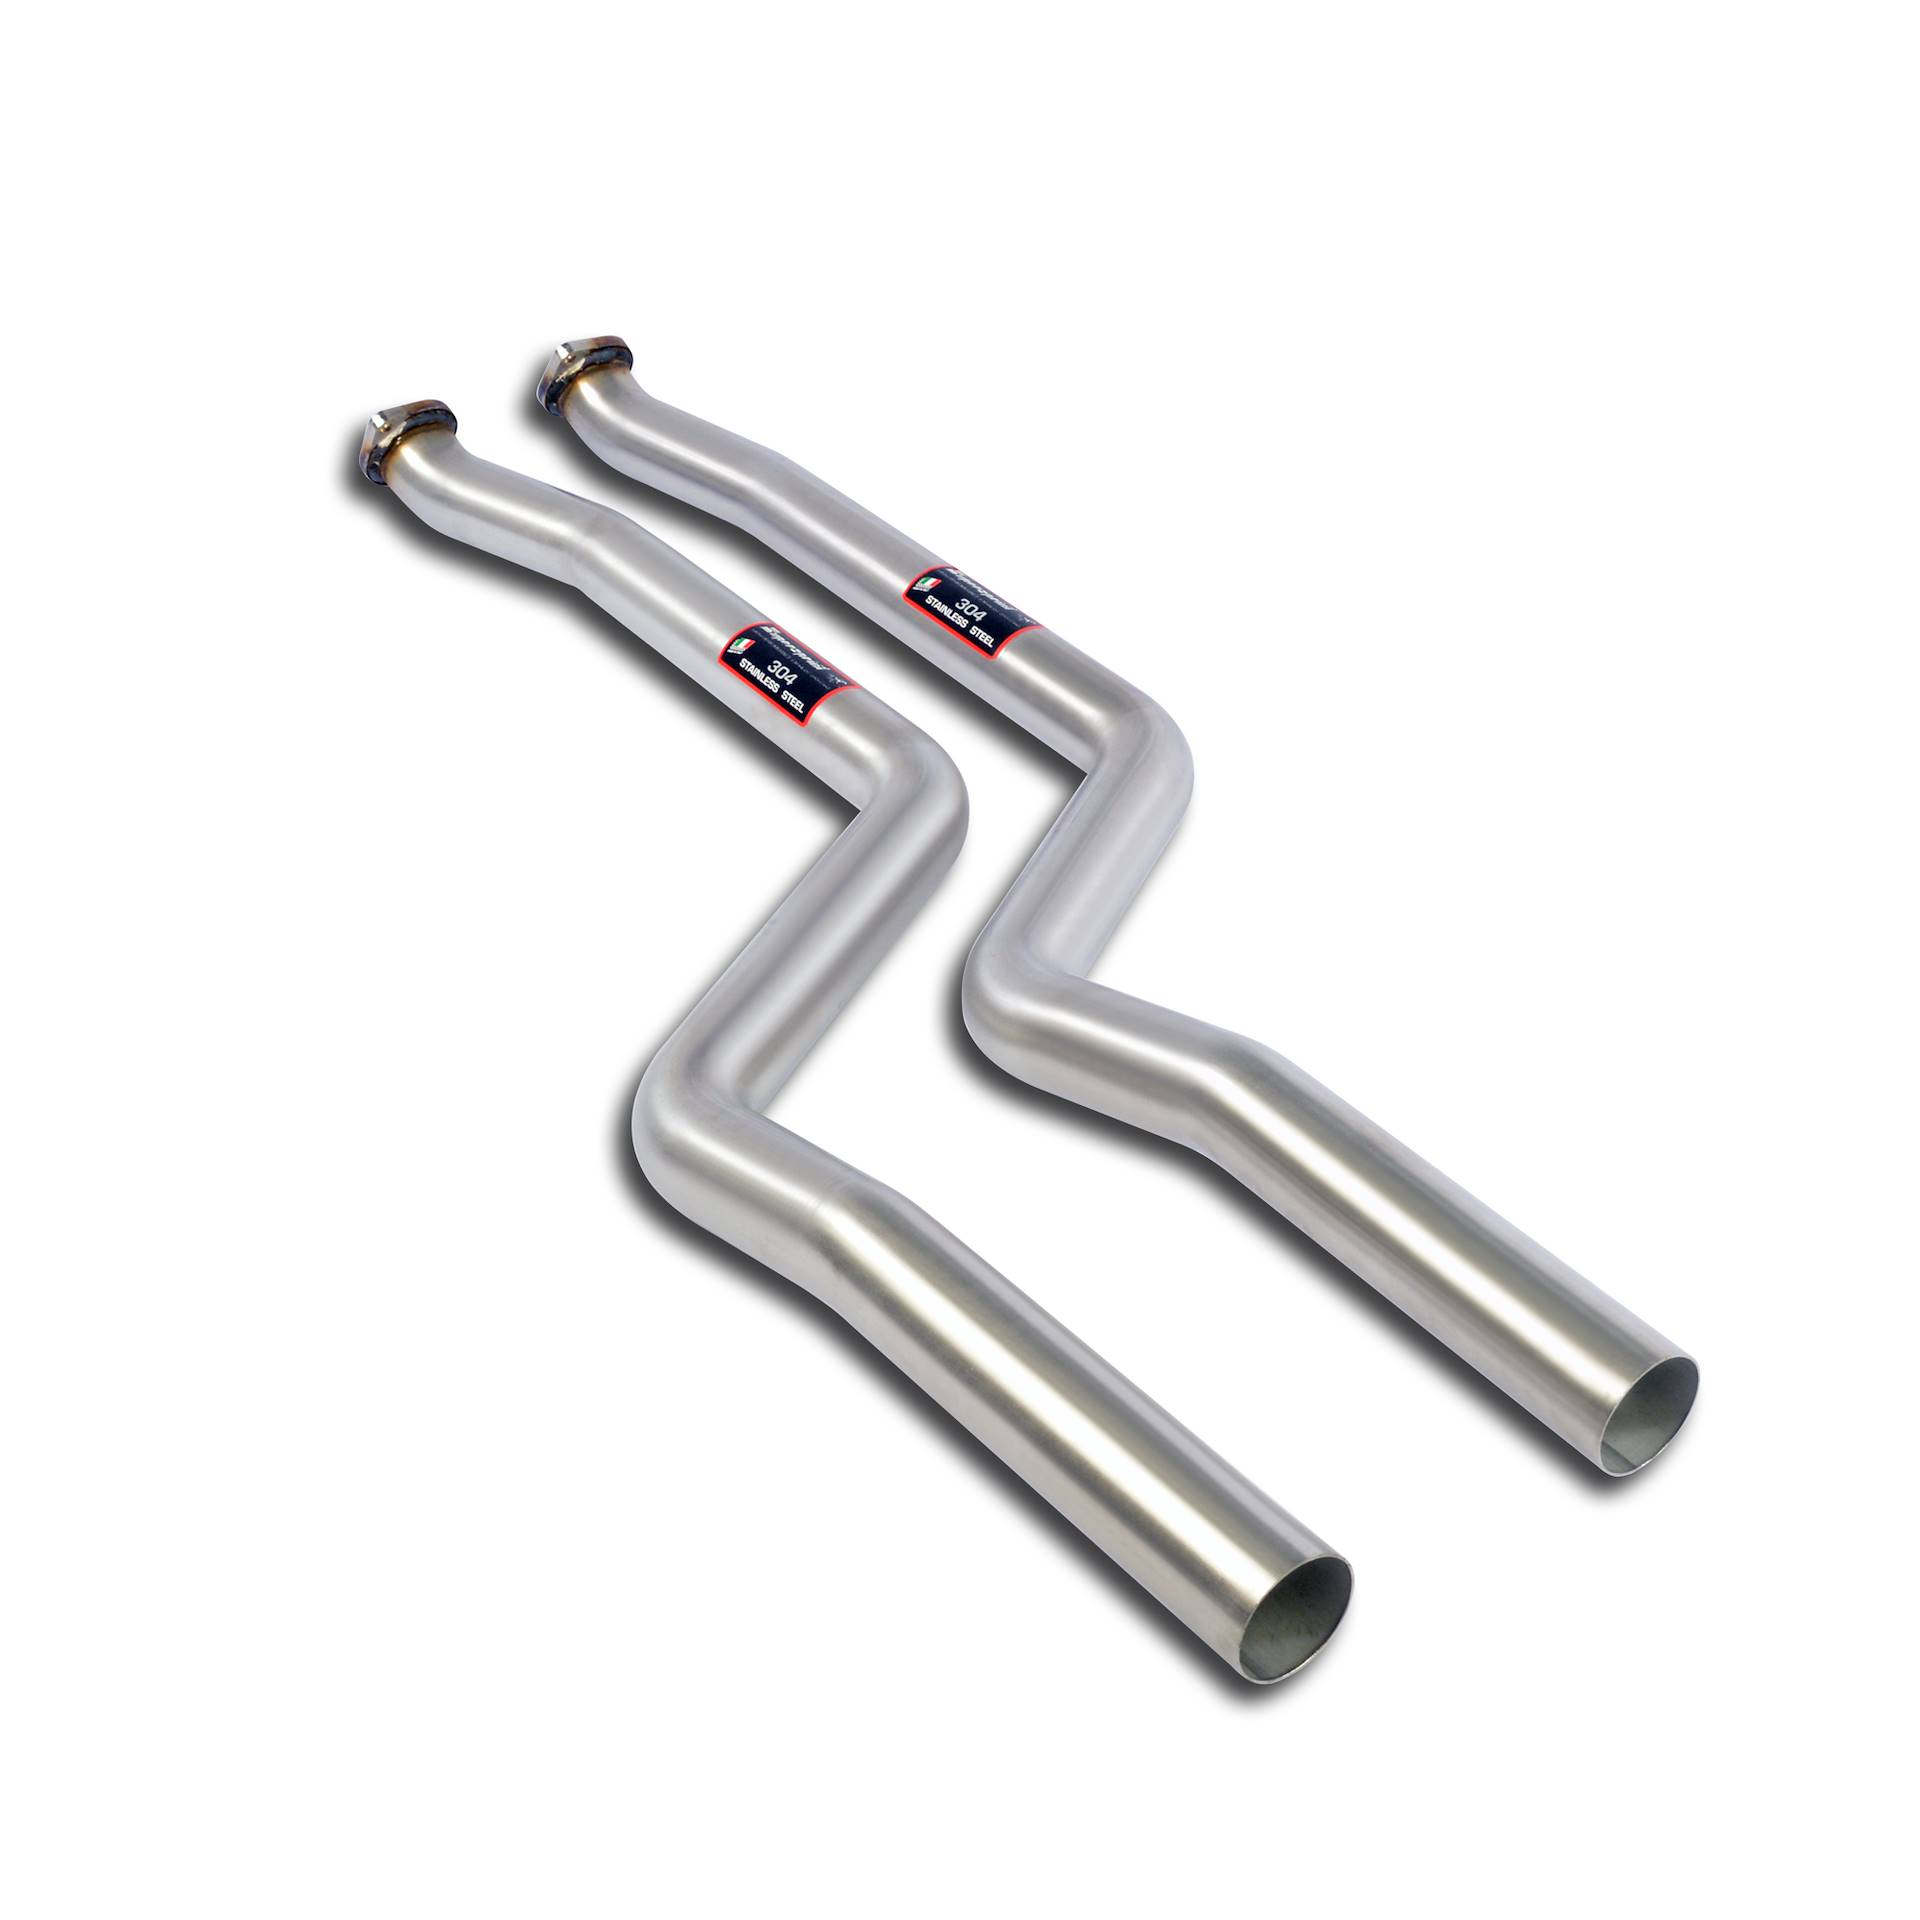 Alpina BMW - ALPINA B3 S (E92) 3.0i Bi-Turbo (400 Hp) 2010 -> 2013 Front pipes Kit Right + Left, performance exhaust systems